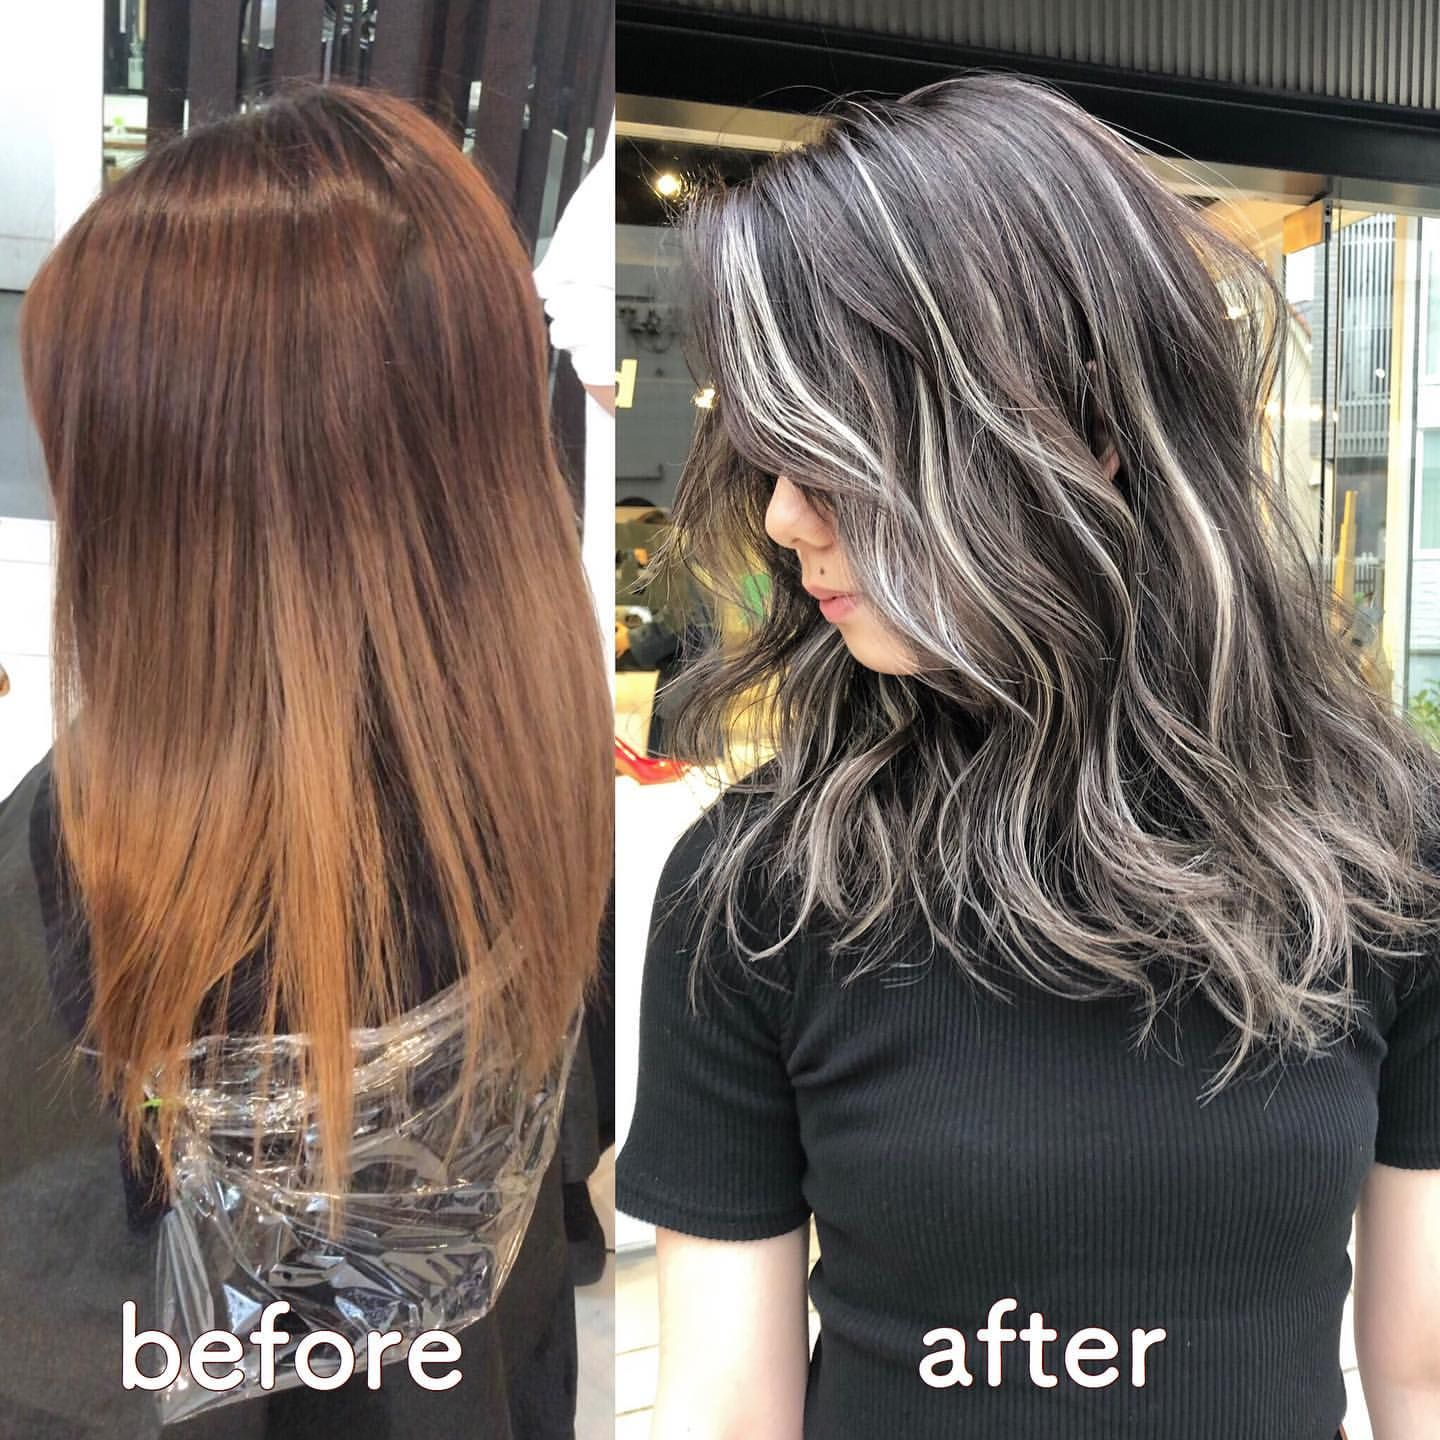 Instagram Posts At アクア 表参道 Acqua Omotesando Picdeer Ash Blonde Highlights On Dark Hair Black Hair Silver Highlights Dark Hair With Highlights